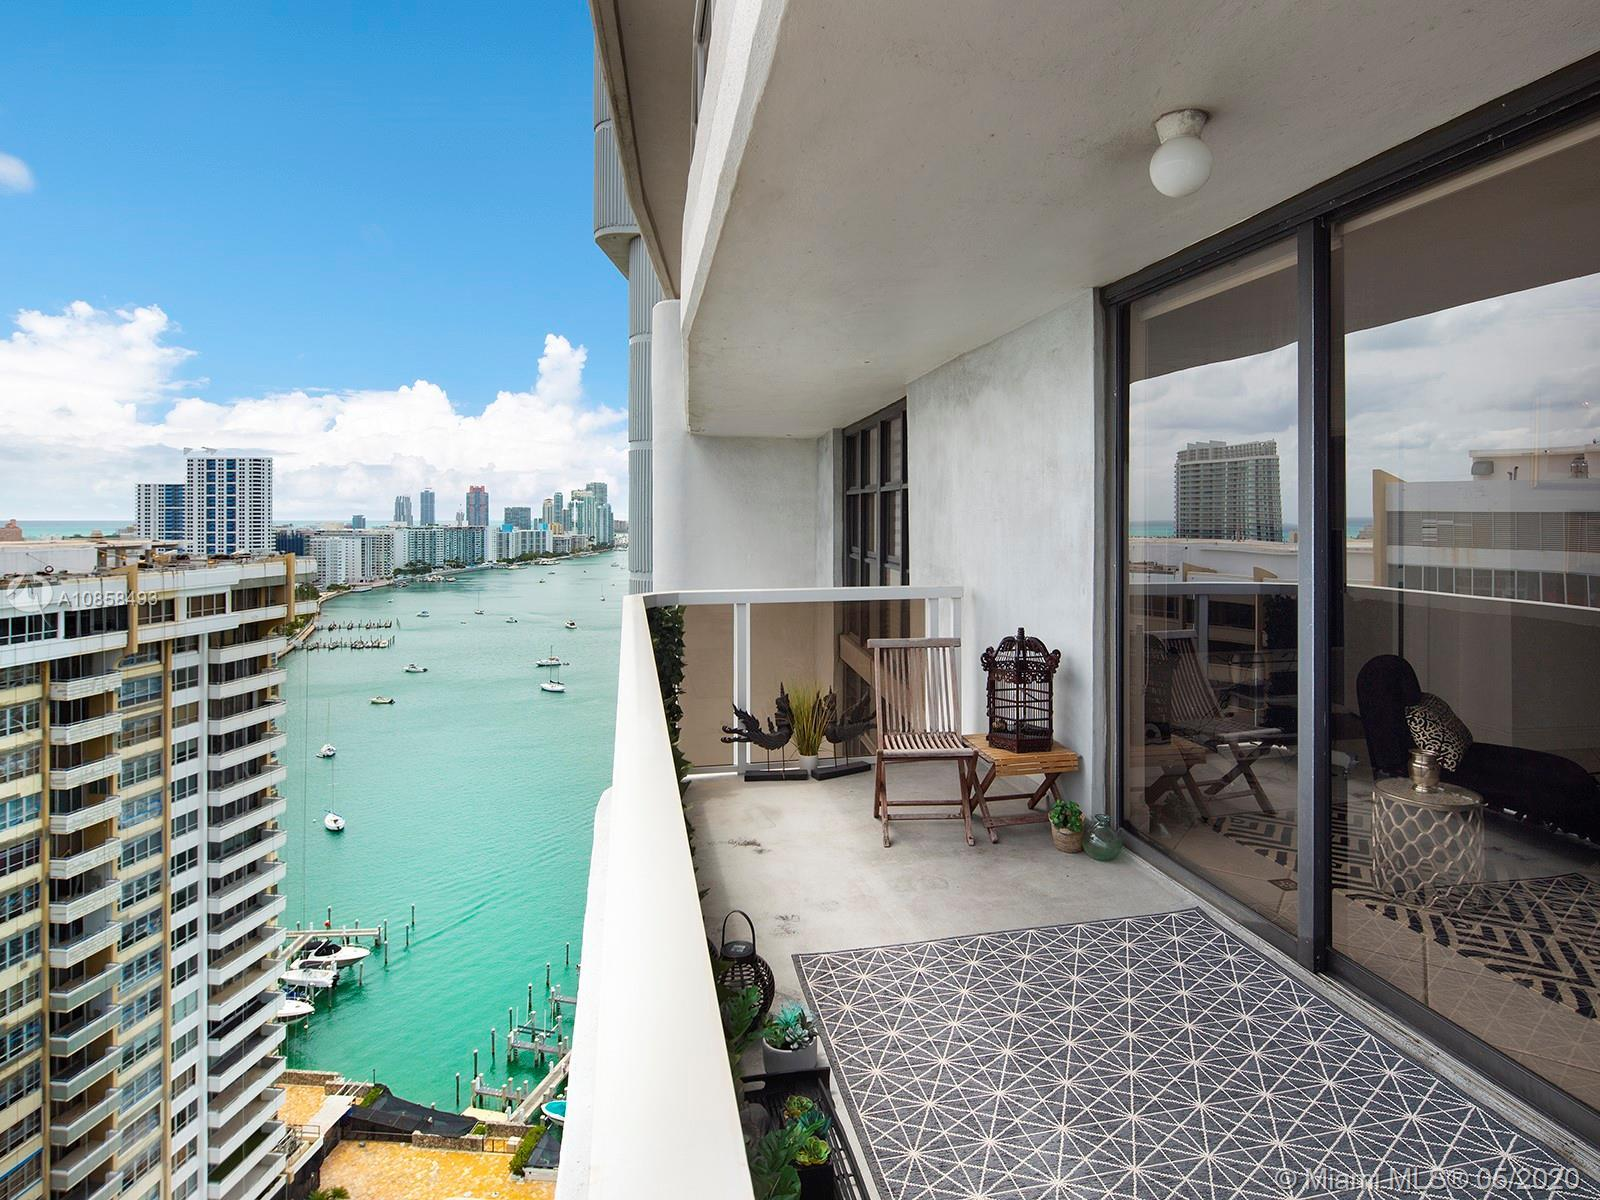 Located in one of Miami Beach's most-treasured condos, this high floor 1,190 square foot unit offers